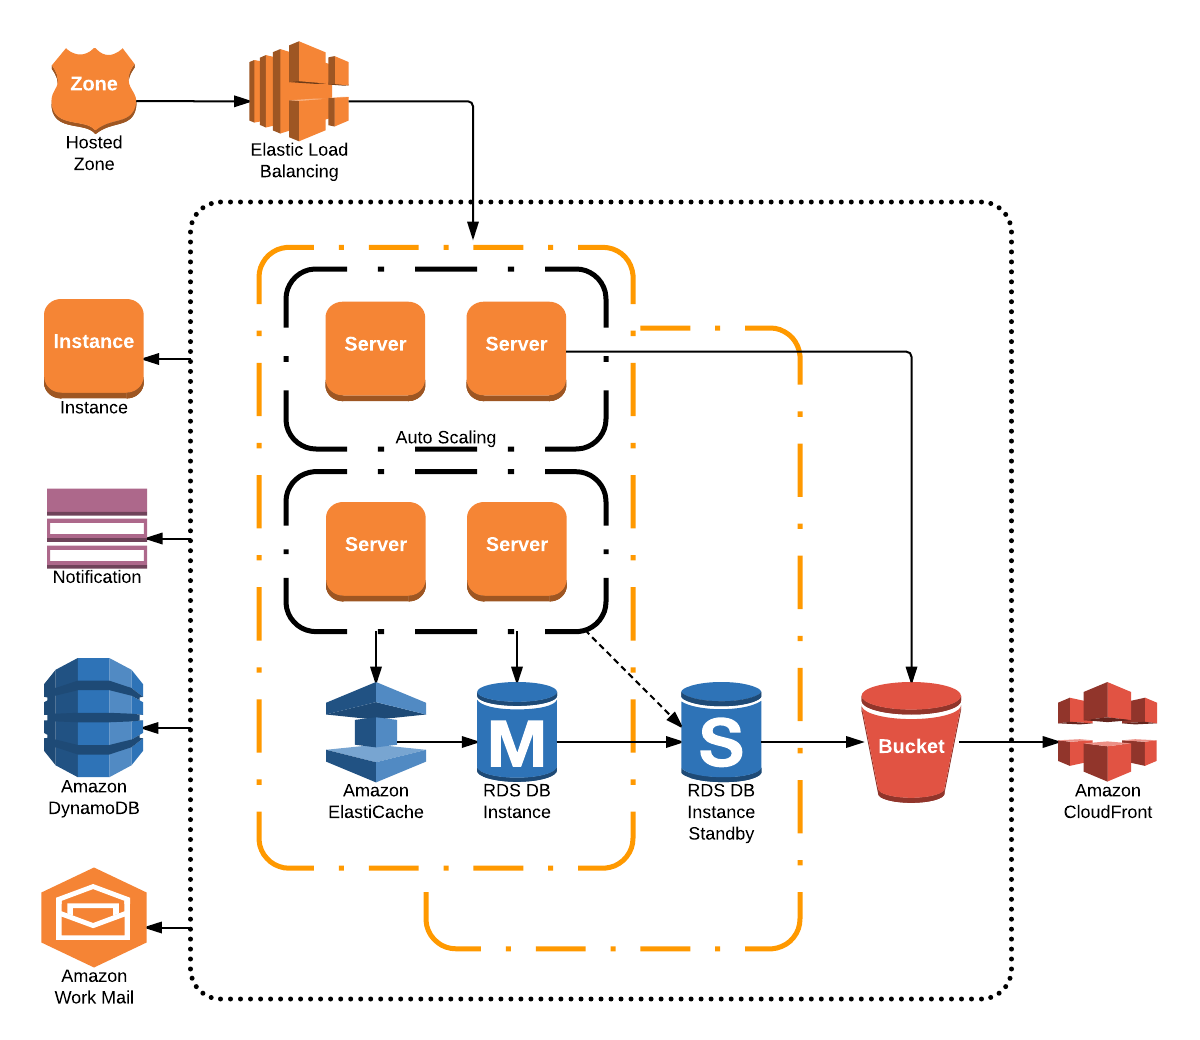 Microsoft Infrastructure Diagram Wiring For Gooseneck Trailer Plug A Free Aws Template Network